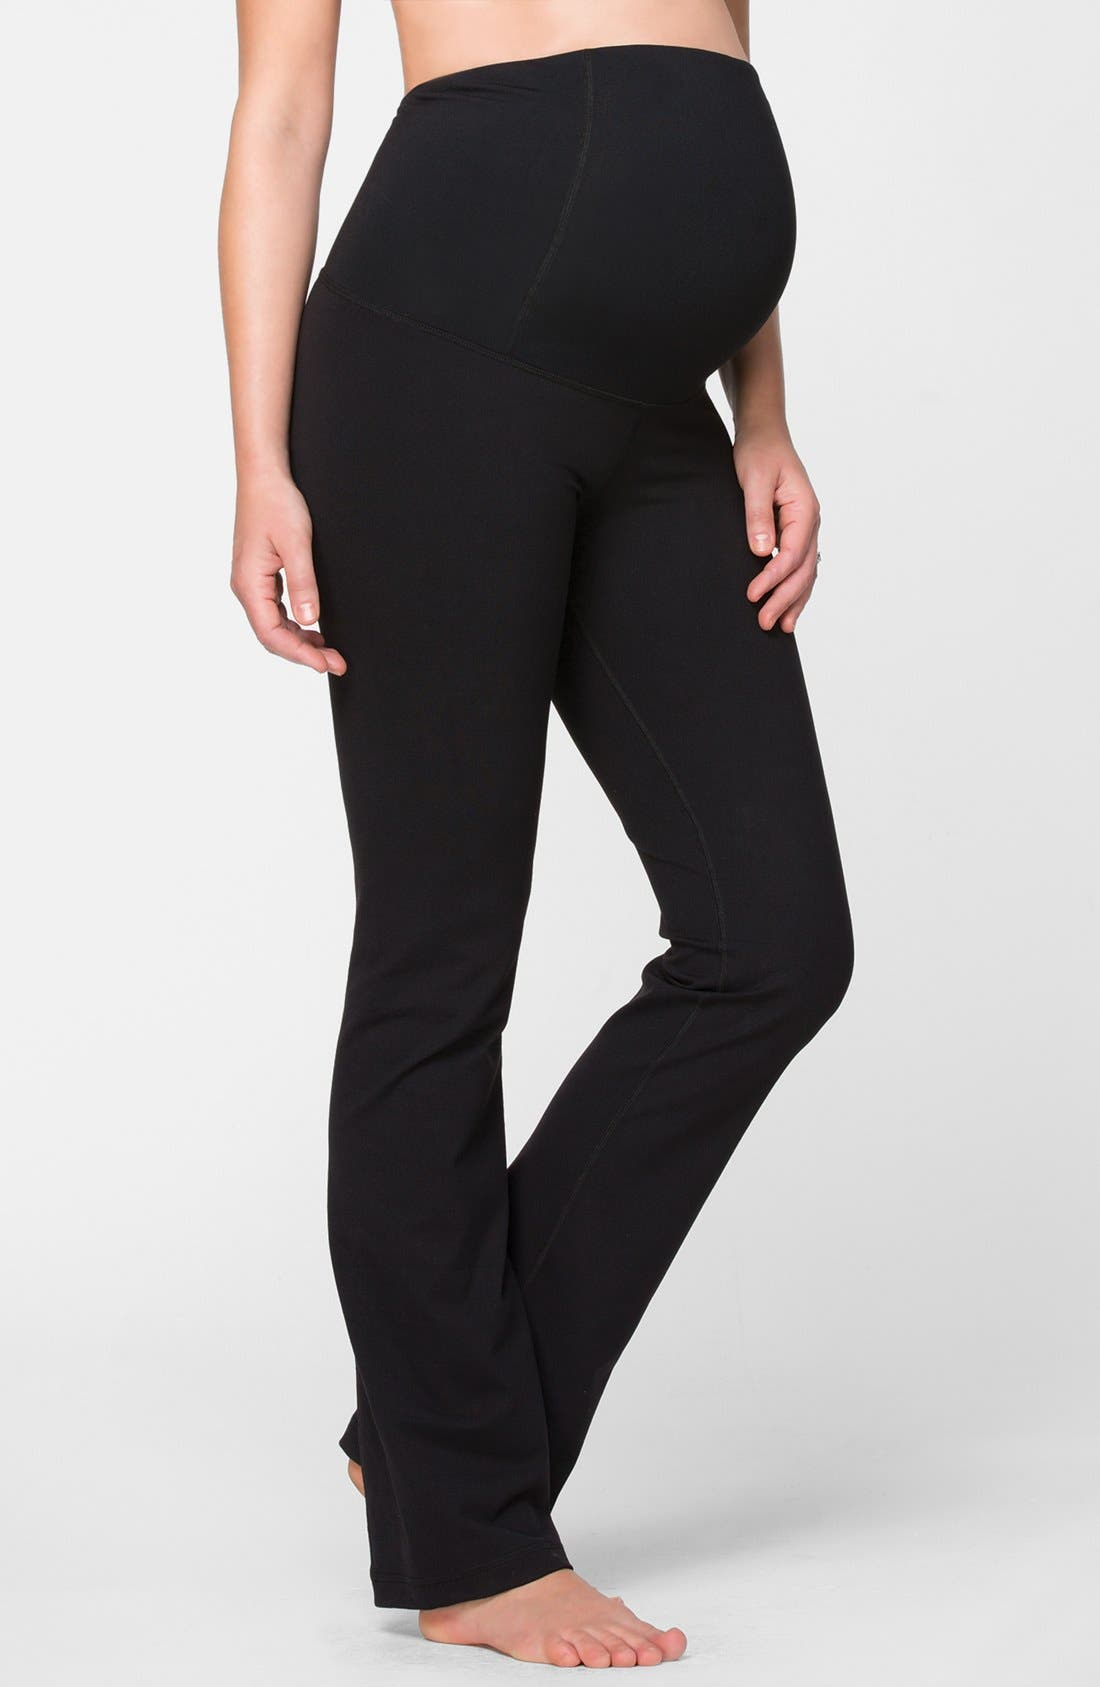 Ingrid & Isabel® Active Maternity Pants with Crossover Panel